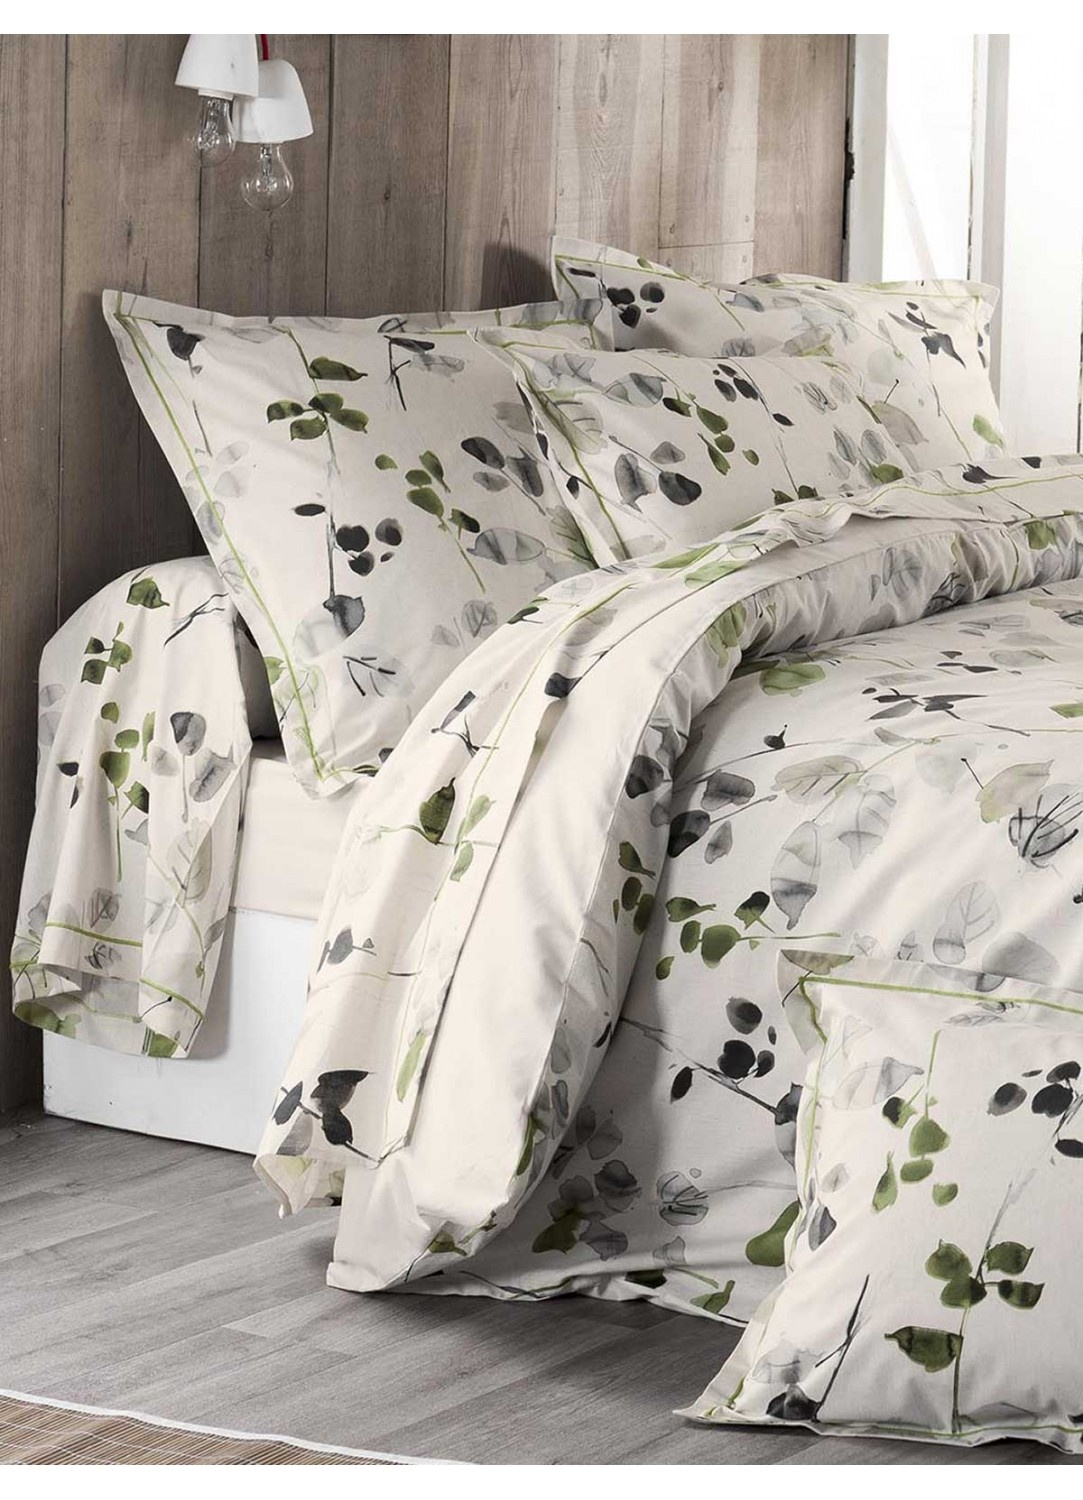 parure de draps 3 pi ces nature et feuillages ecru homemaison vente en ligne parures de lit. Black Bedroom Furniture Sets. Home Design Ideas